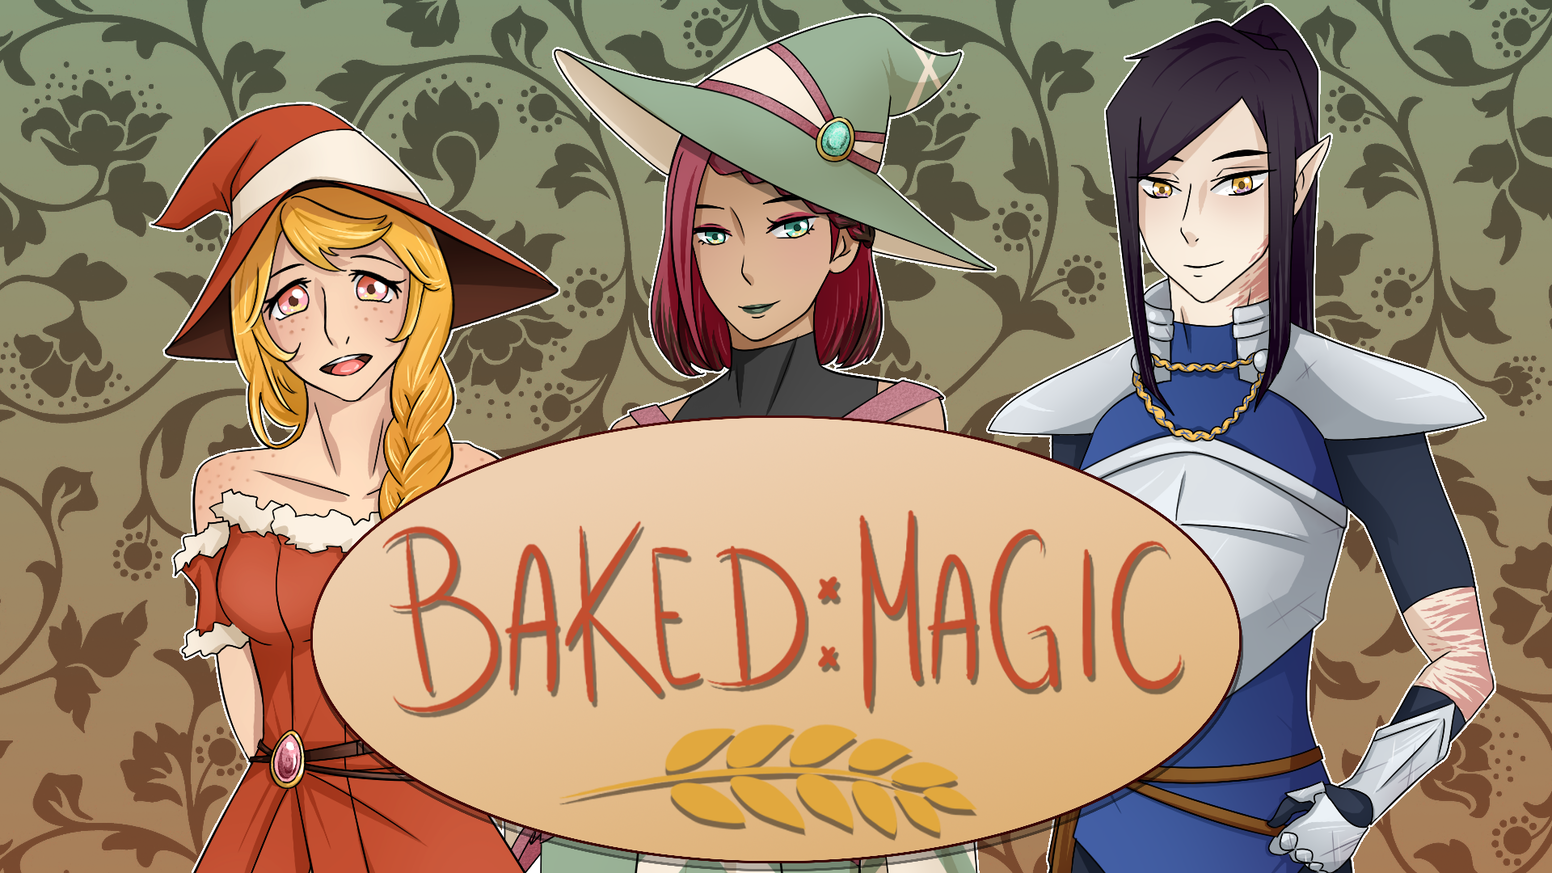 A yuri visual novel about a bakery, two witches, a knight, and some muffins.